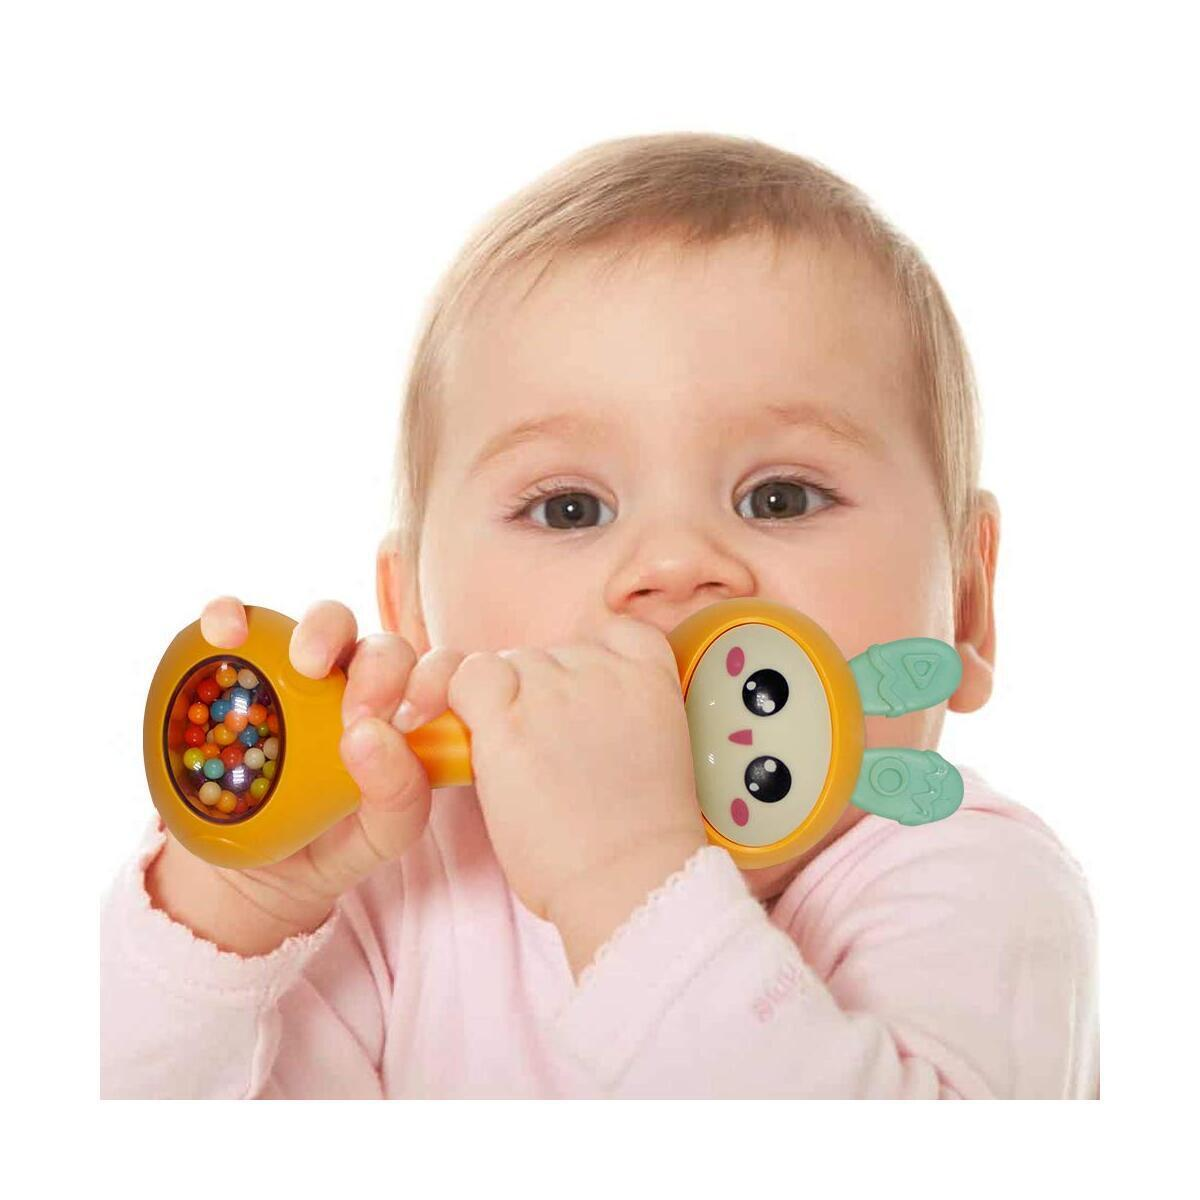 Baby Rattle Teether Molar Toy - SOWOW Baby Grip Silicone Molar Toy Rotating Baby Rattle Gift Set Suitable for Newborn Rattle Musical Toys for 3, 4, 5, 6, 7, 9, 12 months